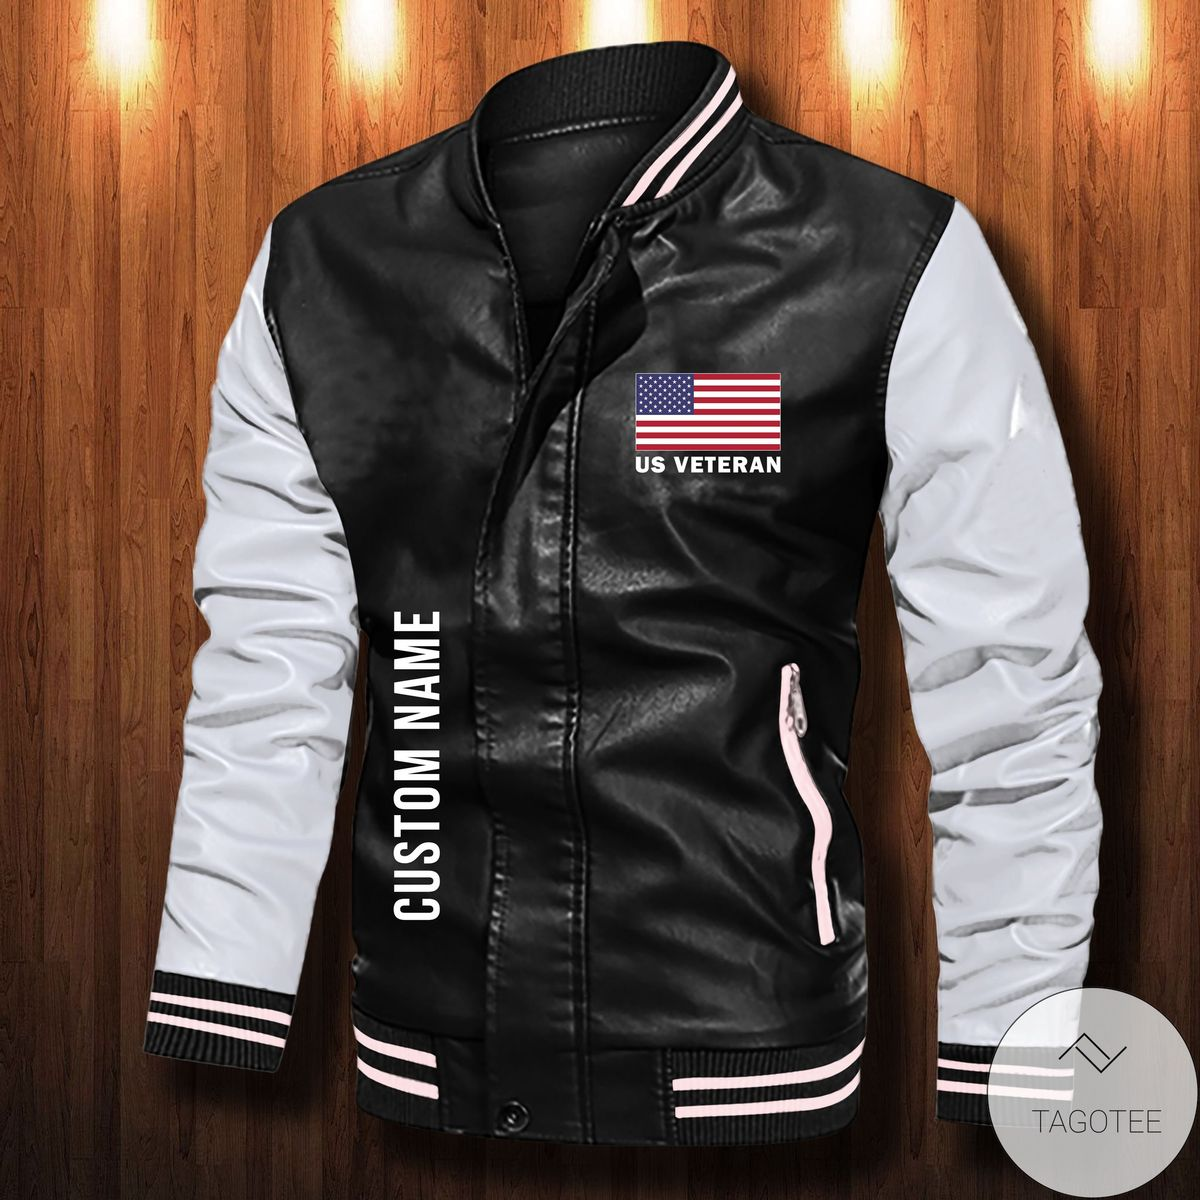 Wonderful Personalized We Sent Our Bravest Led By The Unqualified Leather Bomber Jacket